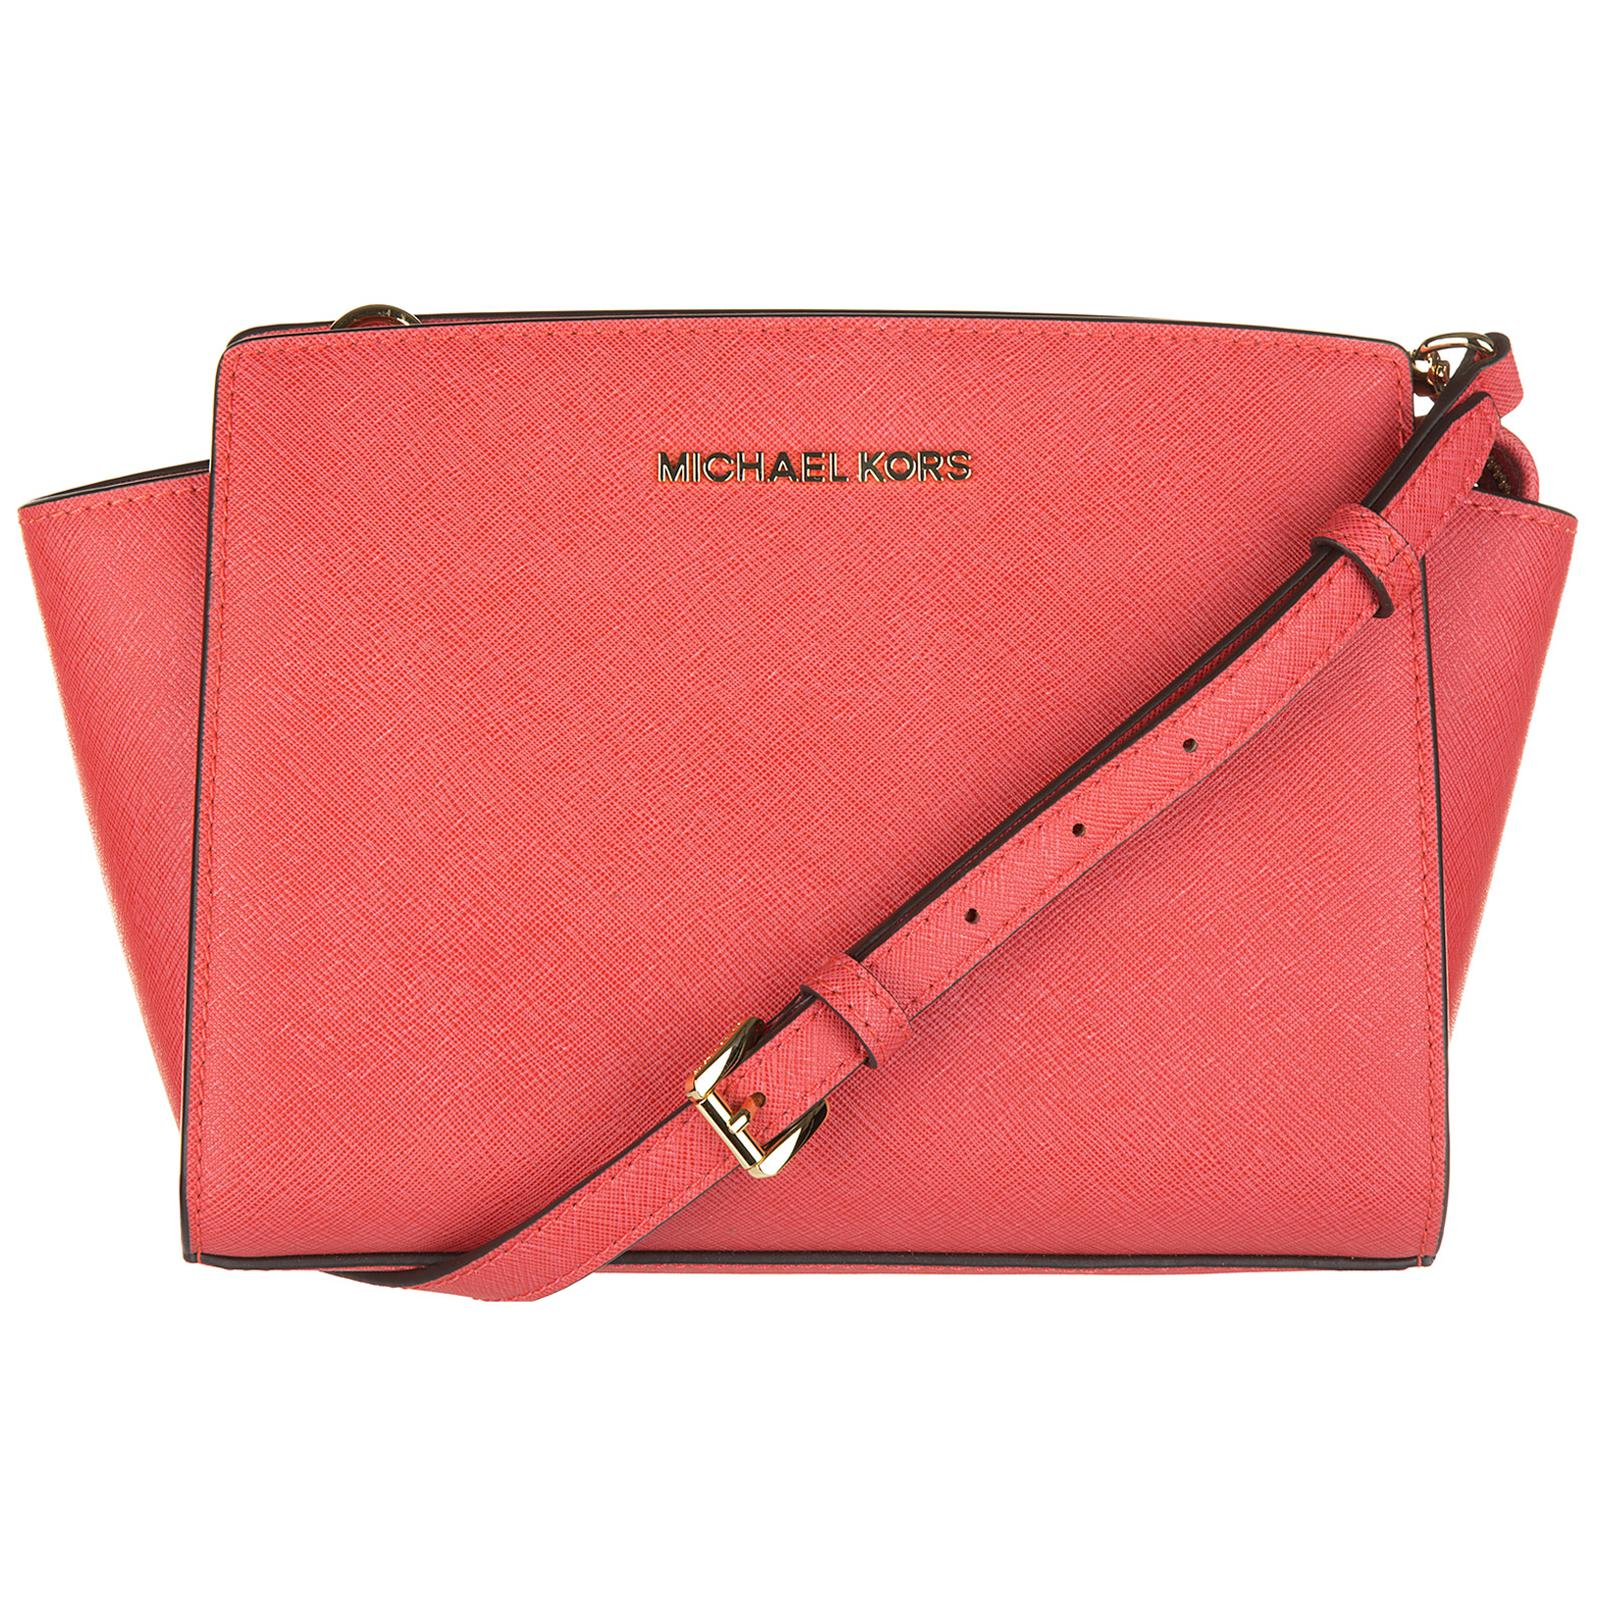 e4a98c572202 ... italy michael kors pink leather cross body messenger shoulder bag selma  lyst. view fullscreen 587f2